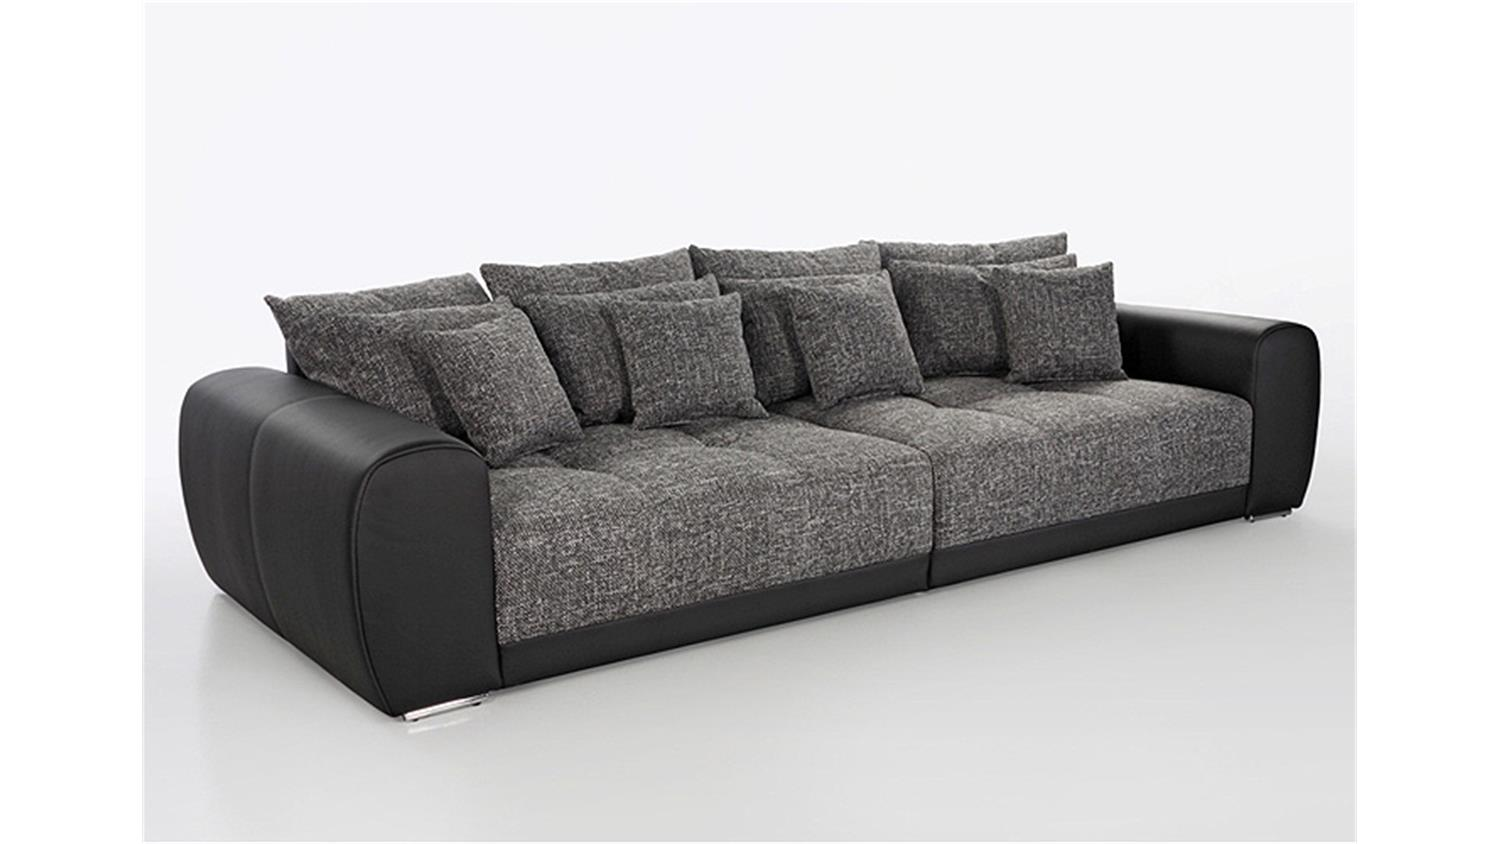 big sofa sam polsterm bel xxl sofa in schwarz grau 310 cm. Black Bedroom Furniture Sets. Home Design Ideas